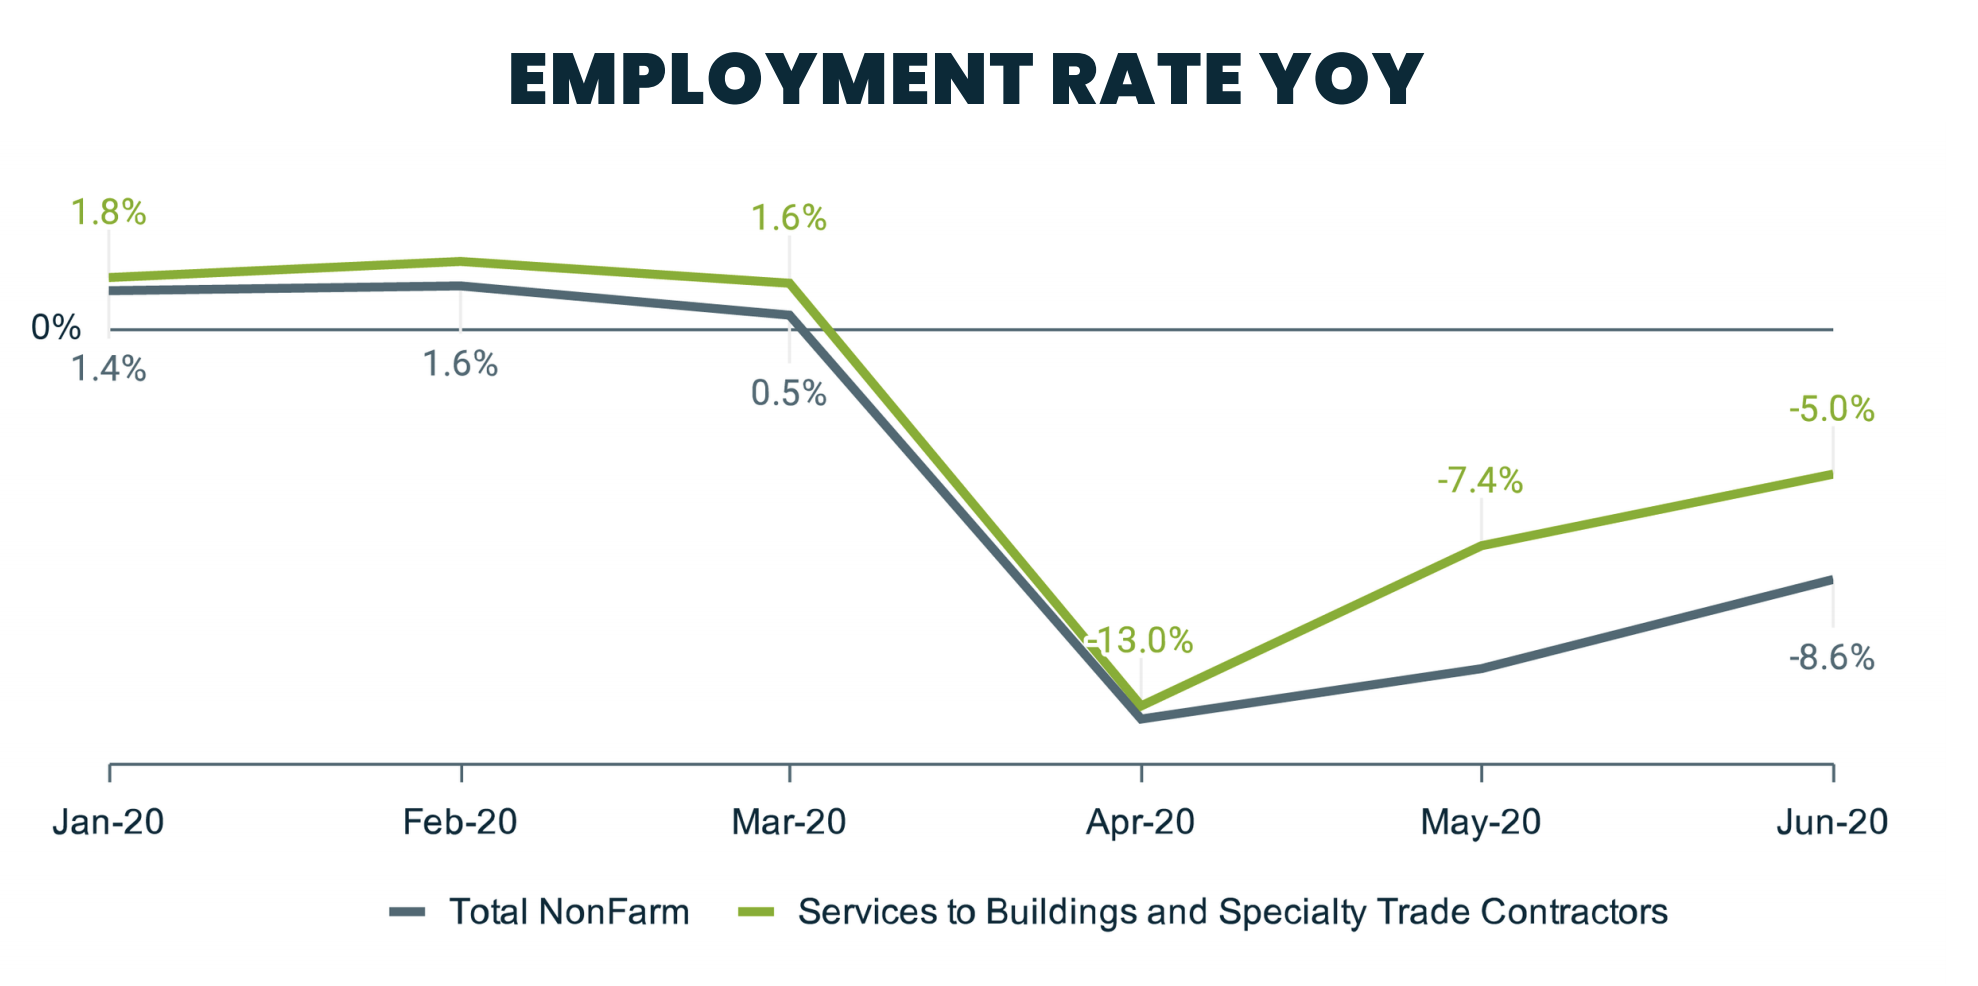 unemployment for specialty contractors